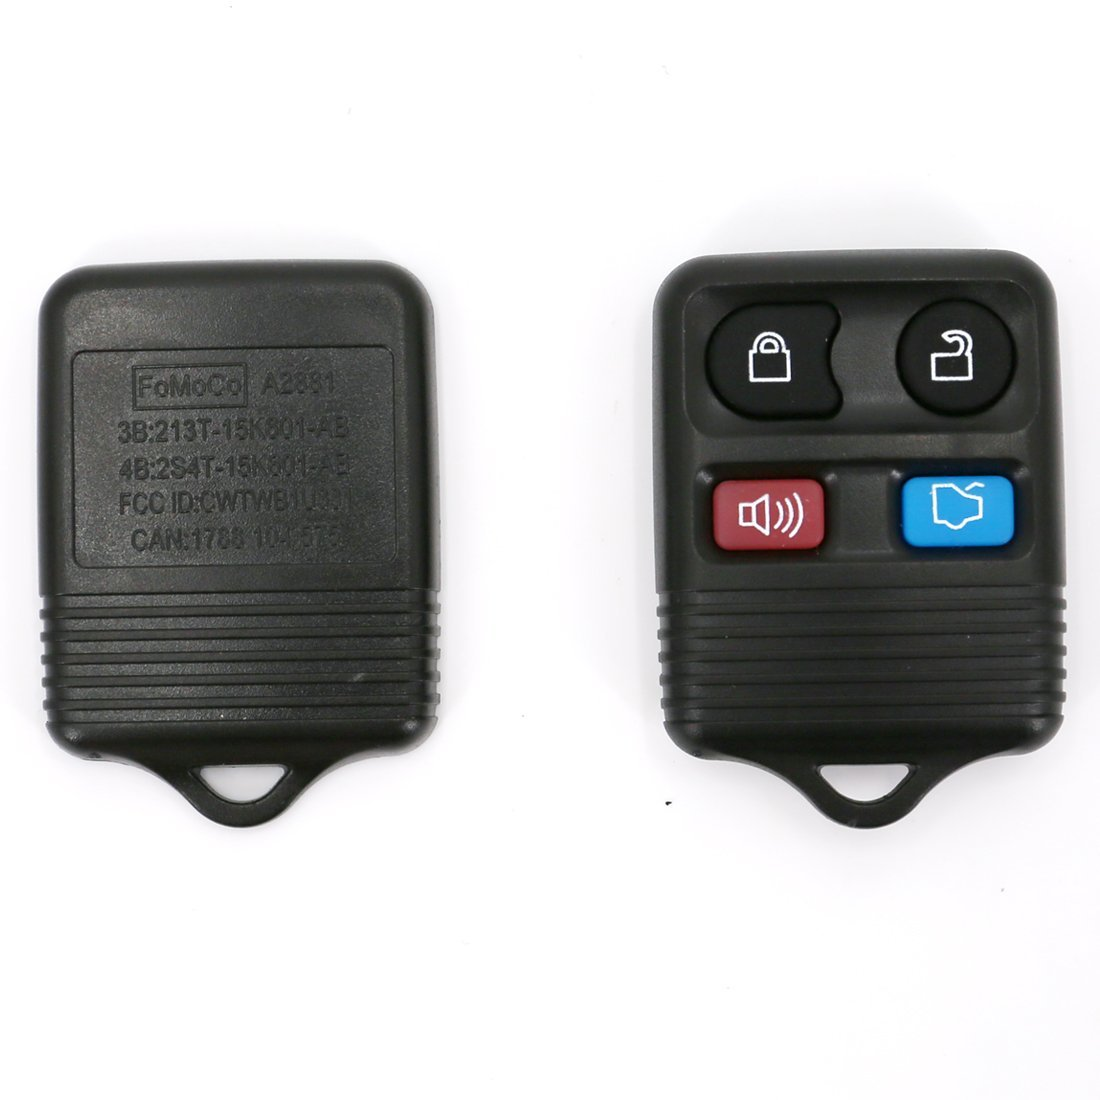 UTSAUTO Replacement Keyless Entry 1 Pack Remote Control Ford Lincoln Mercury Key Fob Clicker Transmitter 4 Button